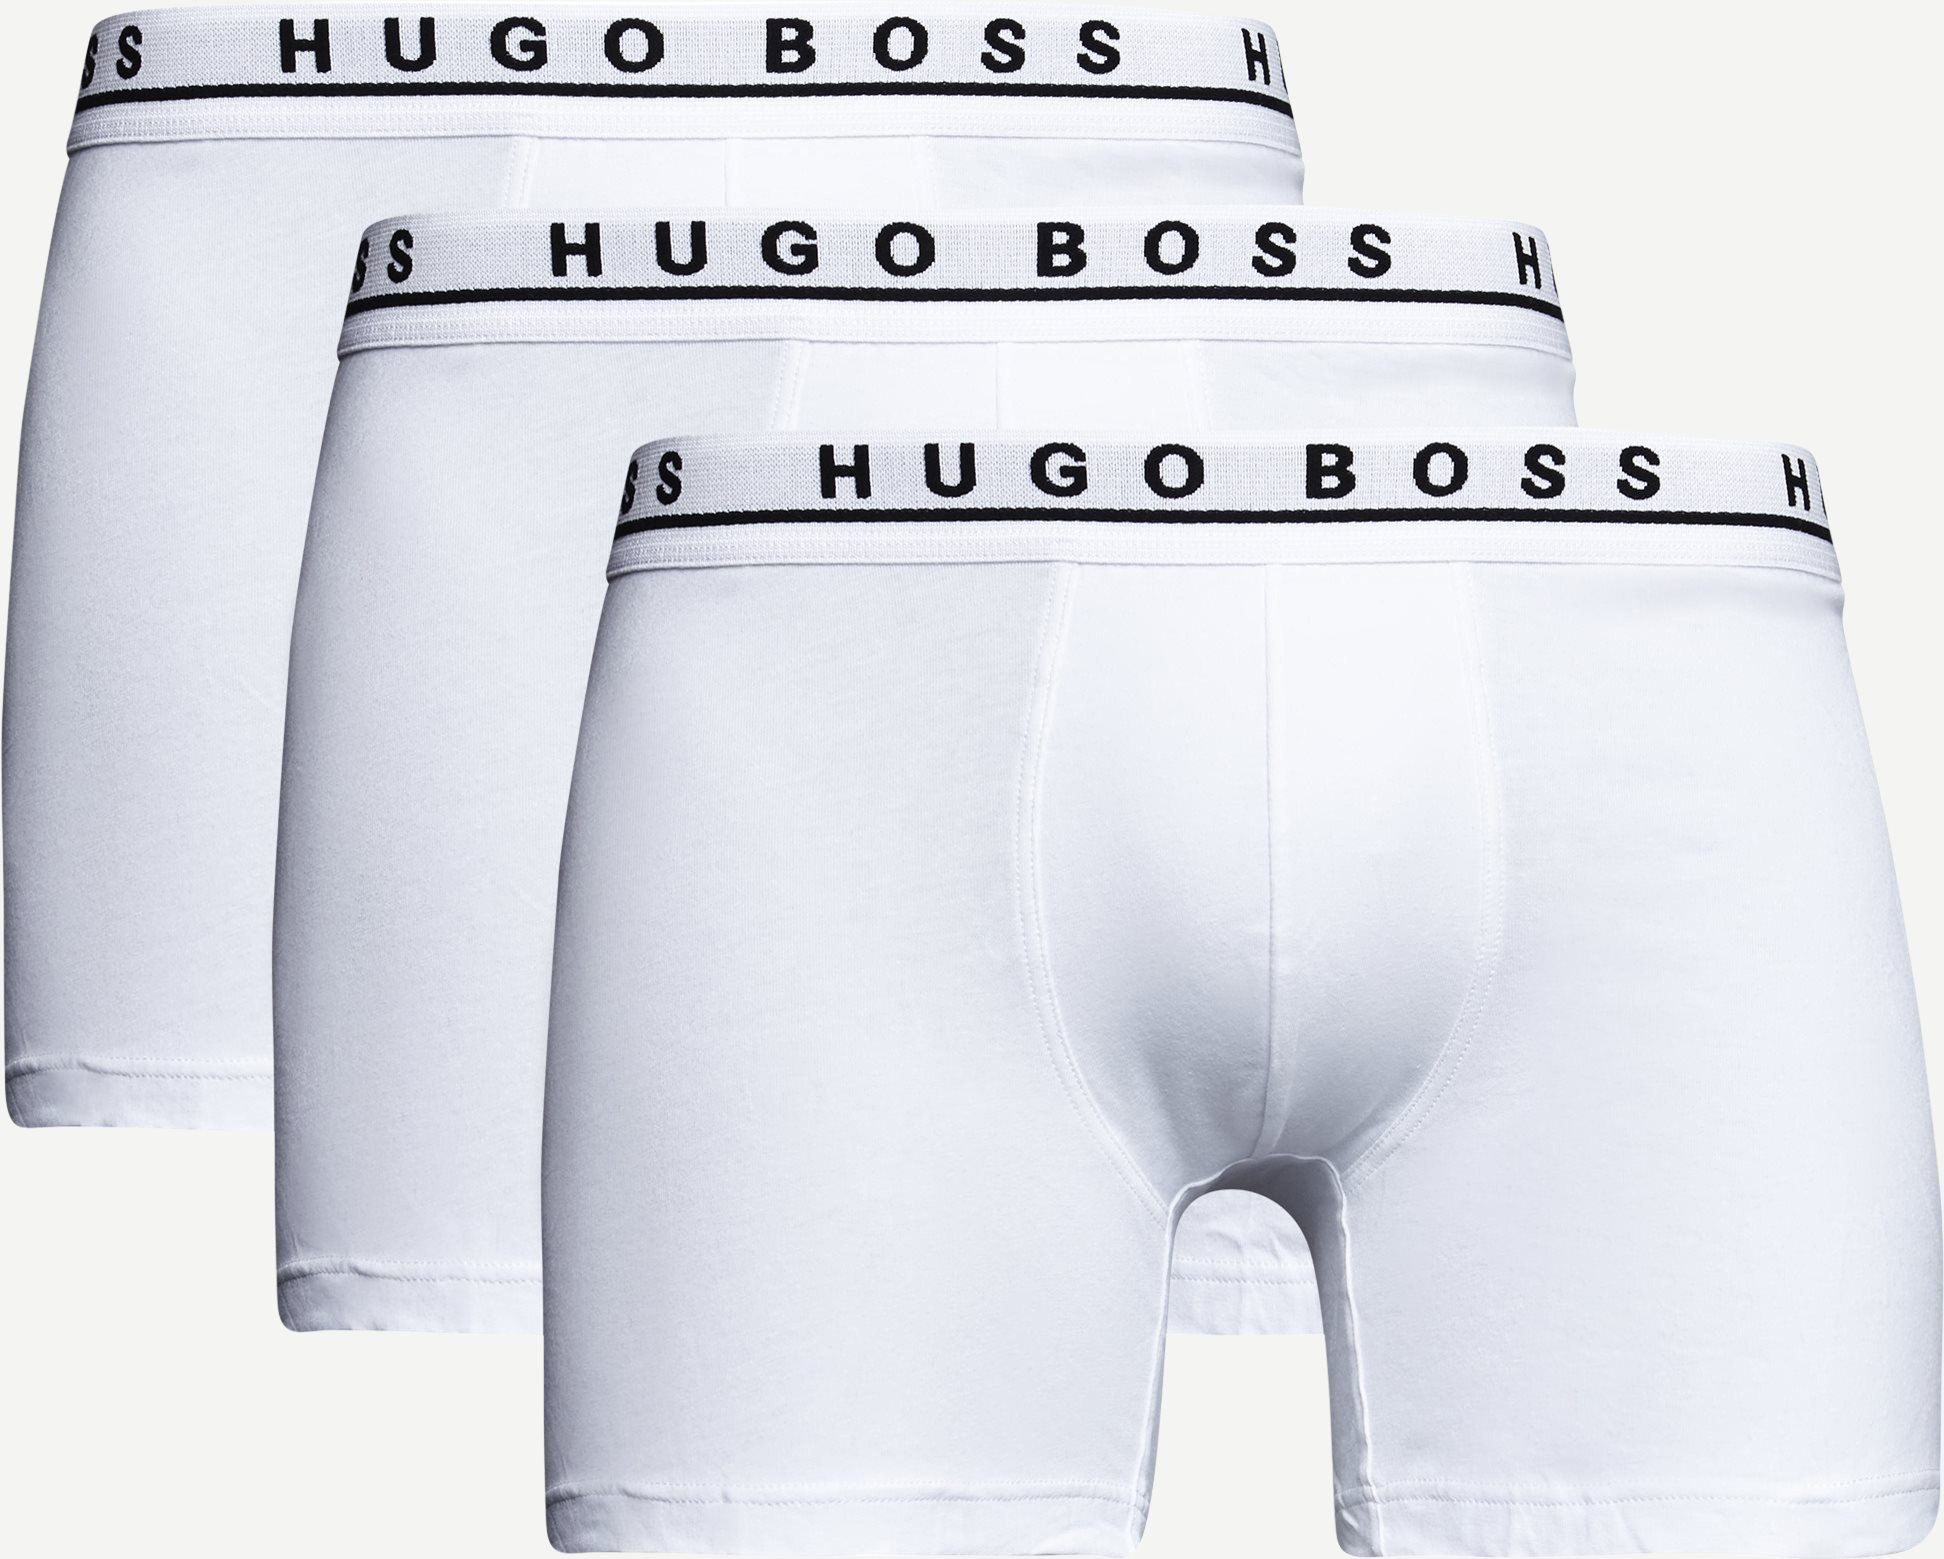 Underwear - Regular - White